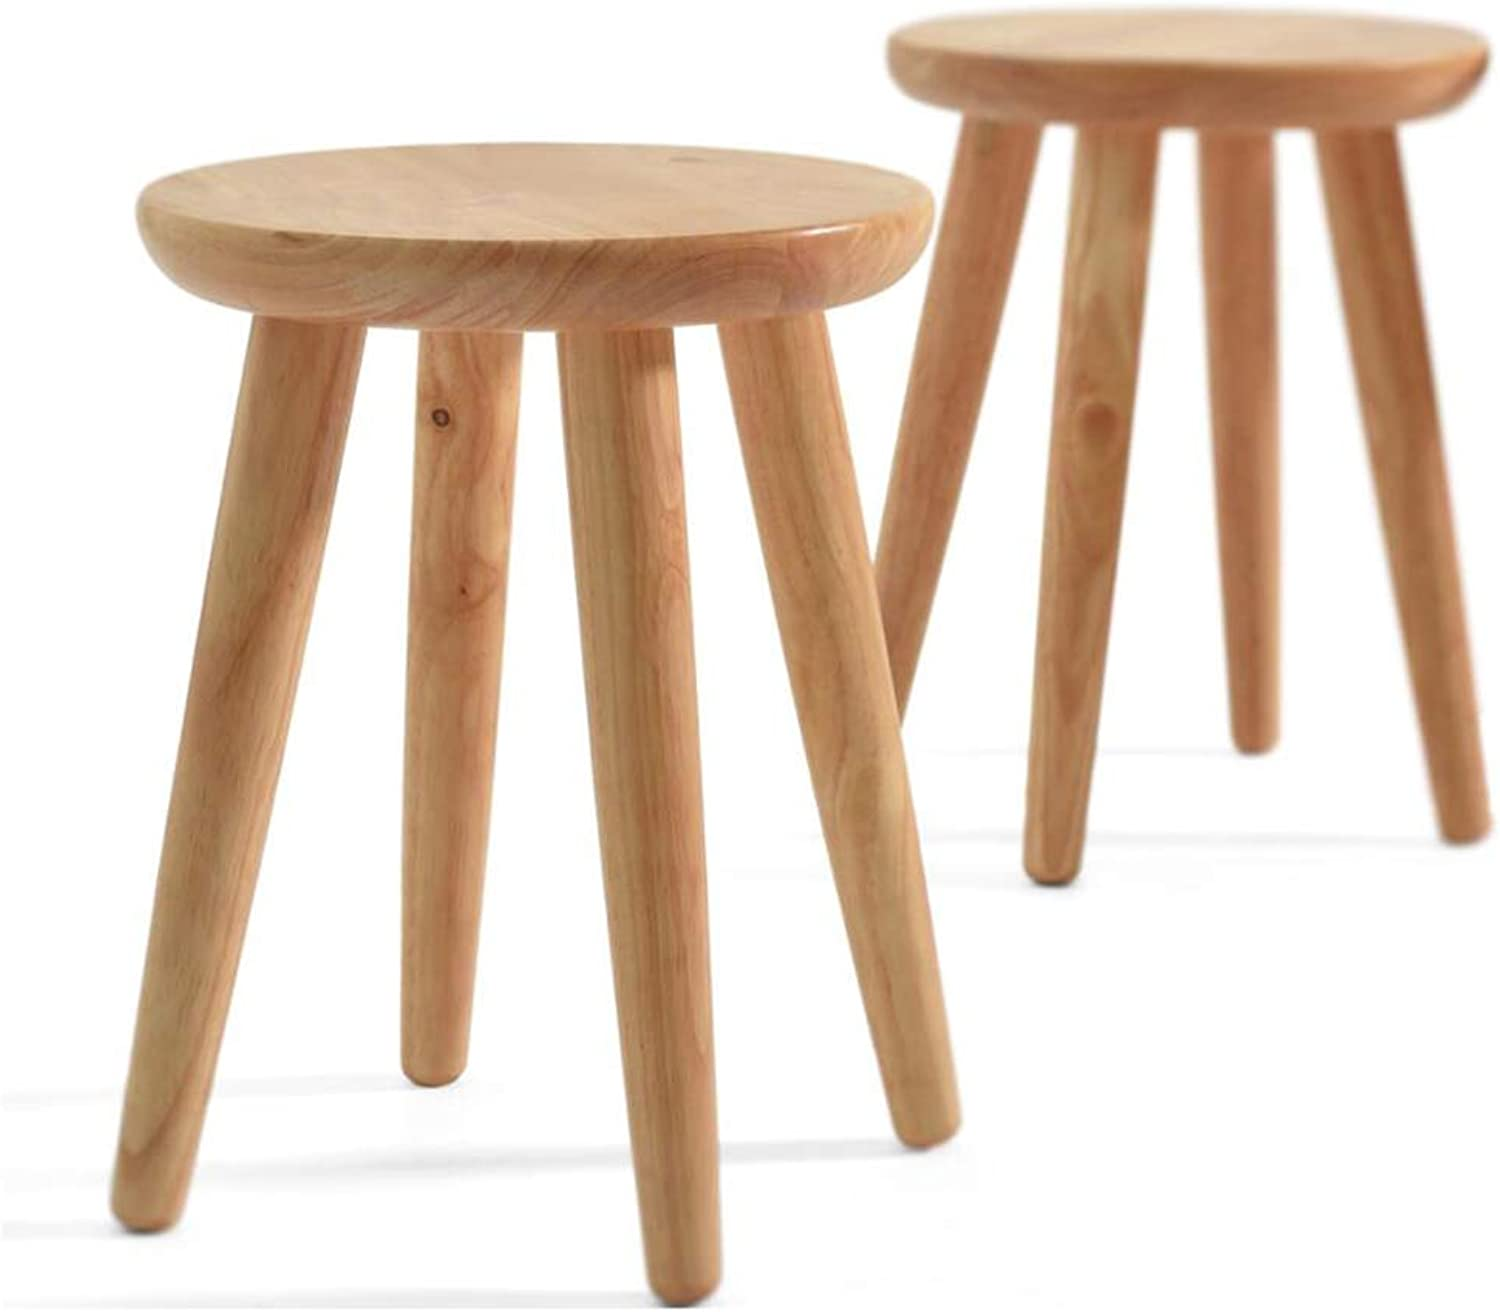 Solid Wood Stool ▏ Creative Round Stool ▏ Small Round Stool Dining Table Stool ▏ Fashion Dining Stool ▏ Low Stool Dressing Stool Home